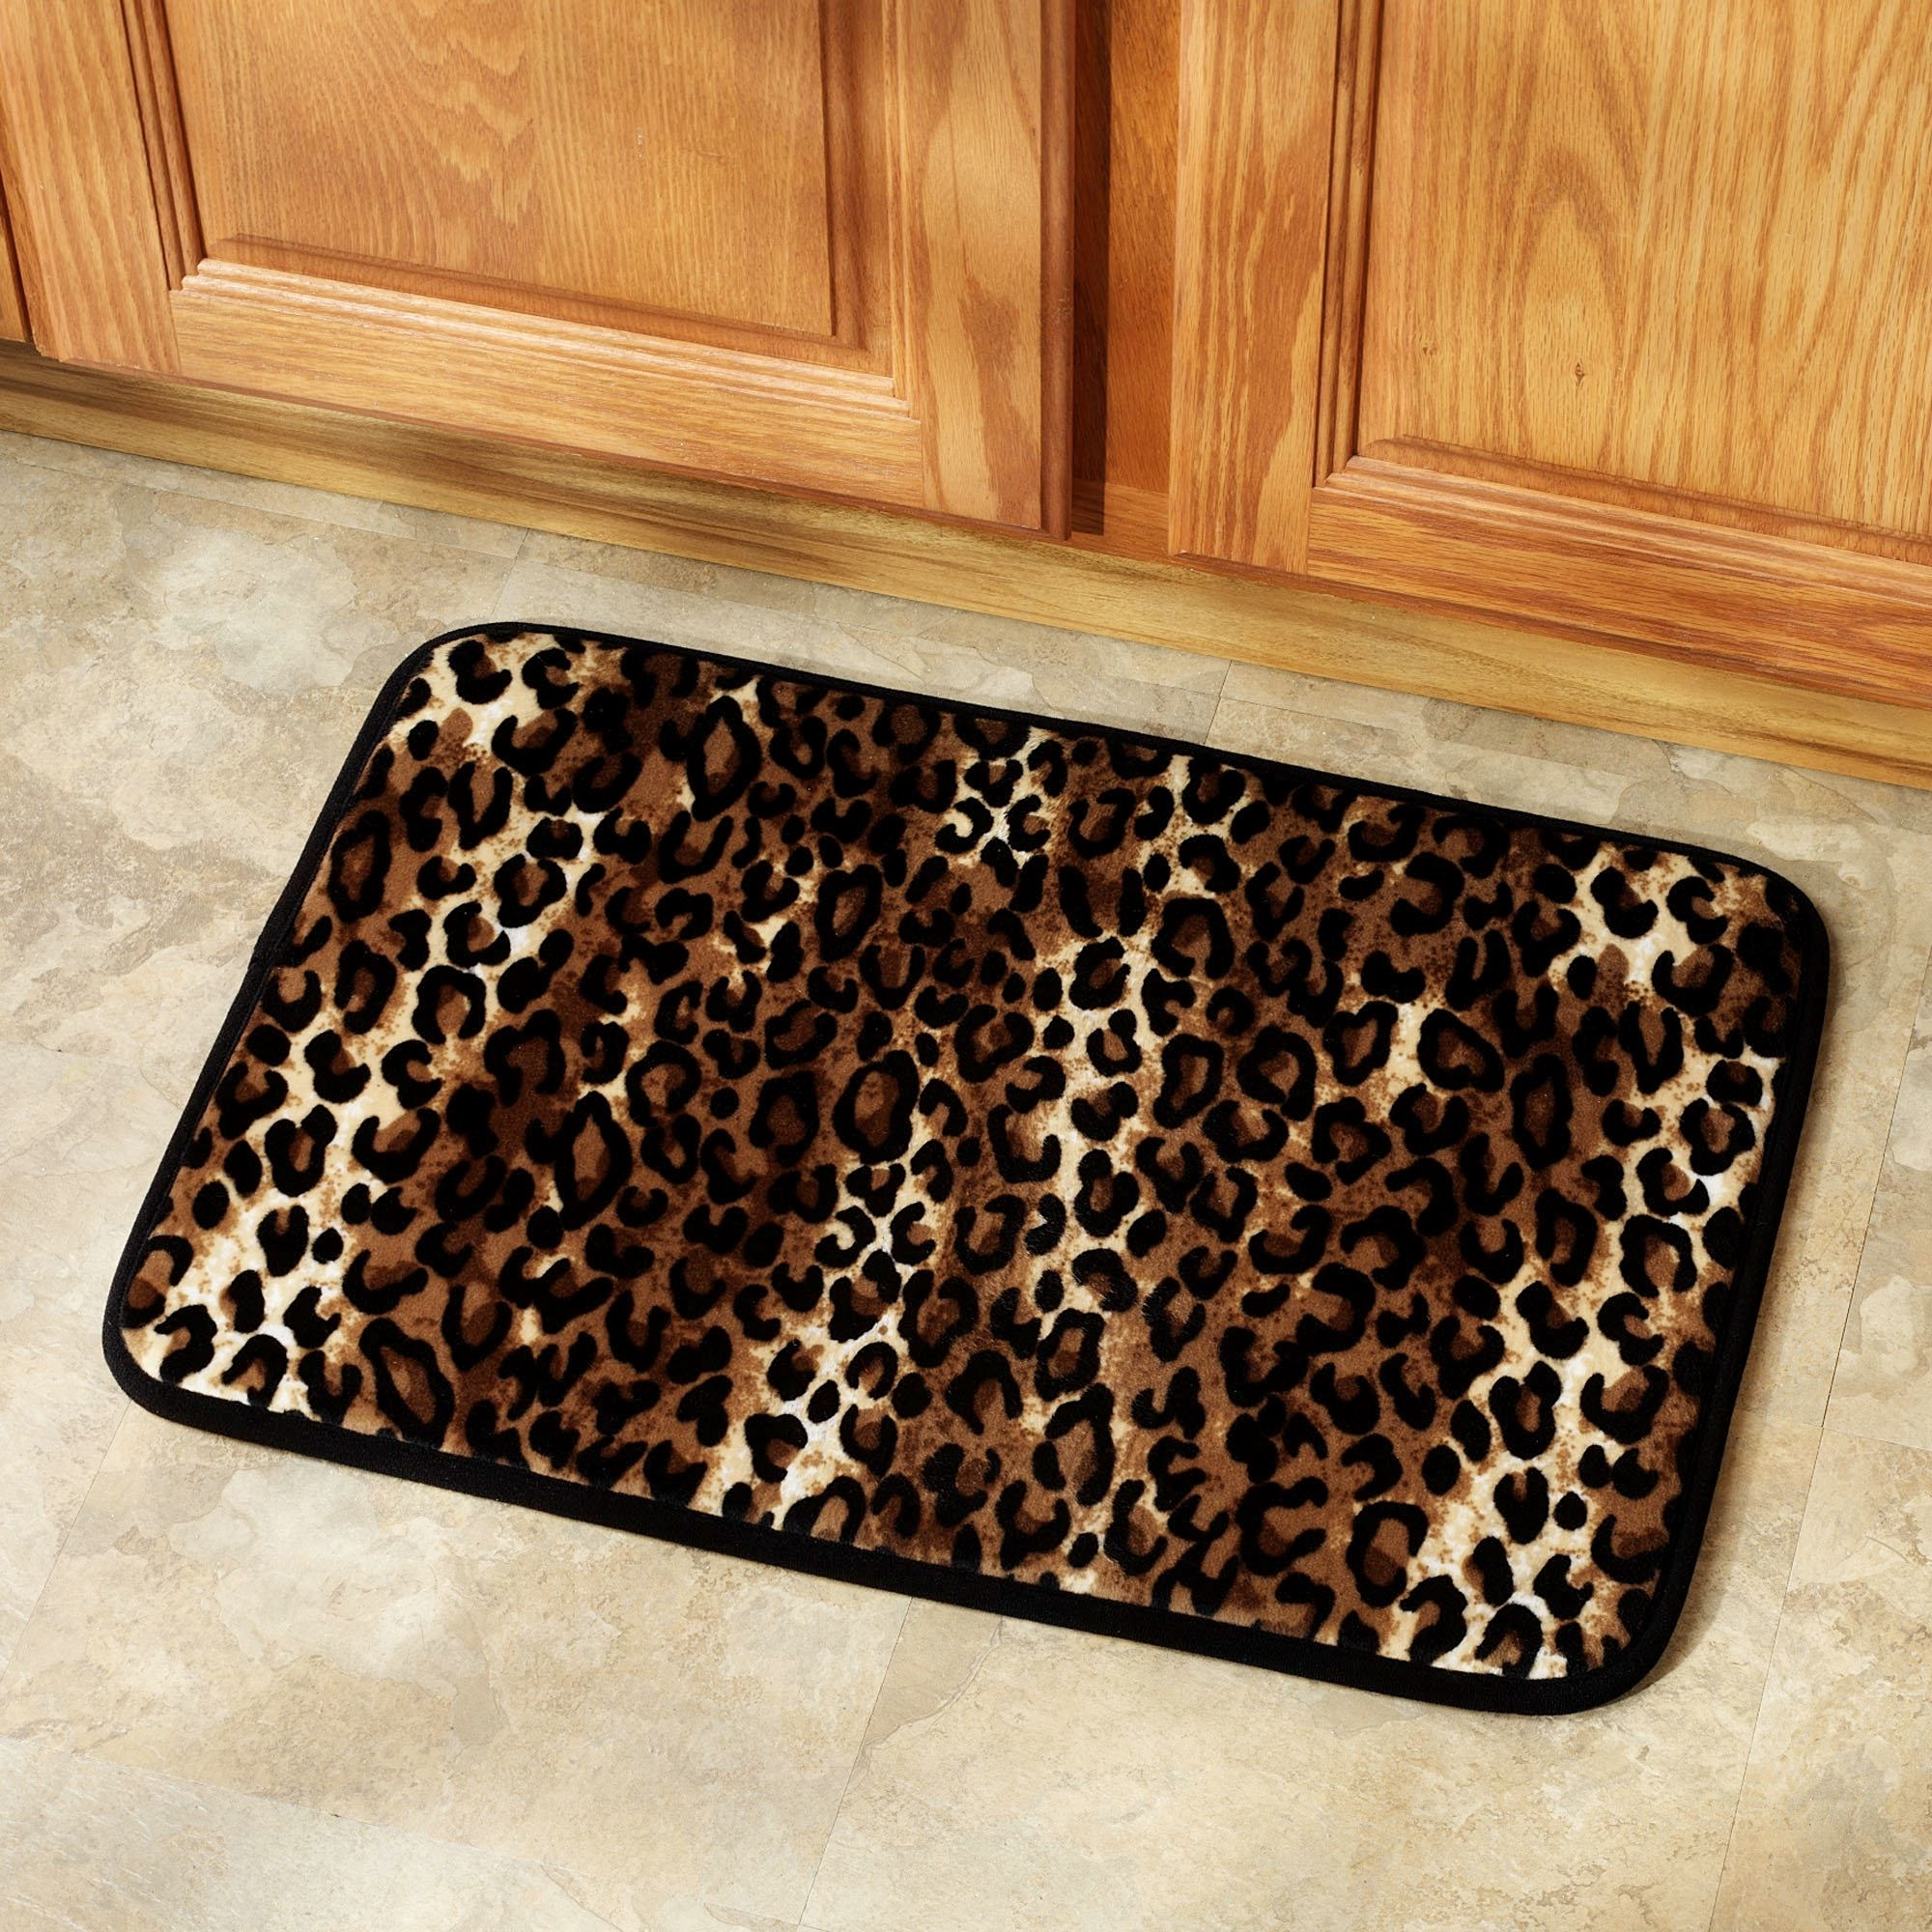 Permalink to Cheetah Print Bath Mats